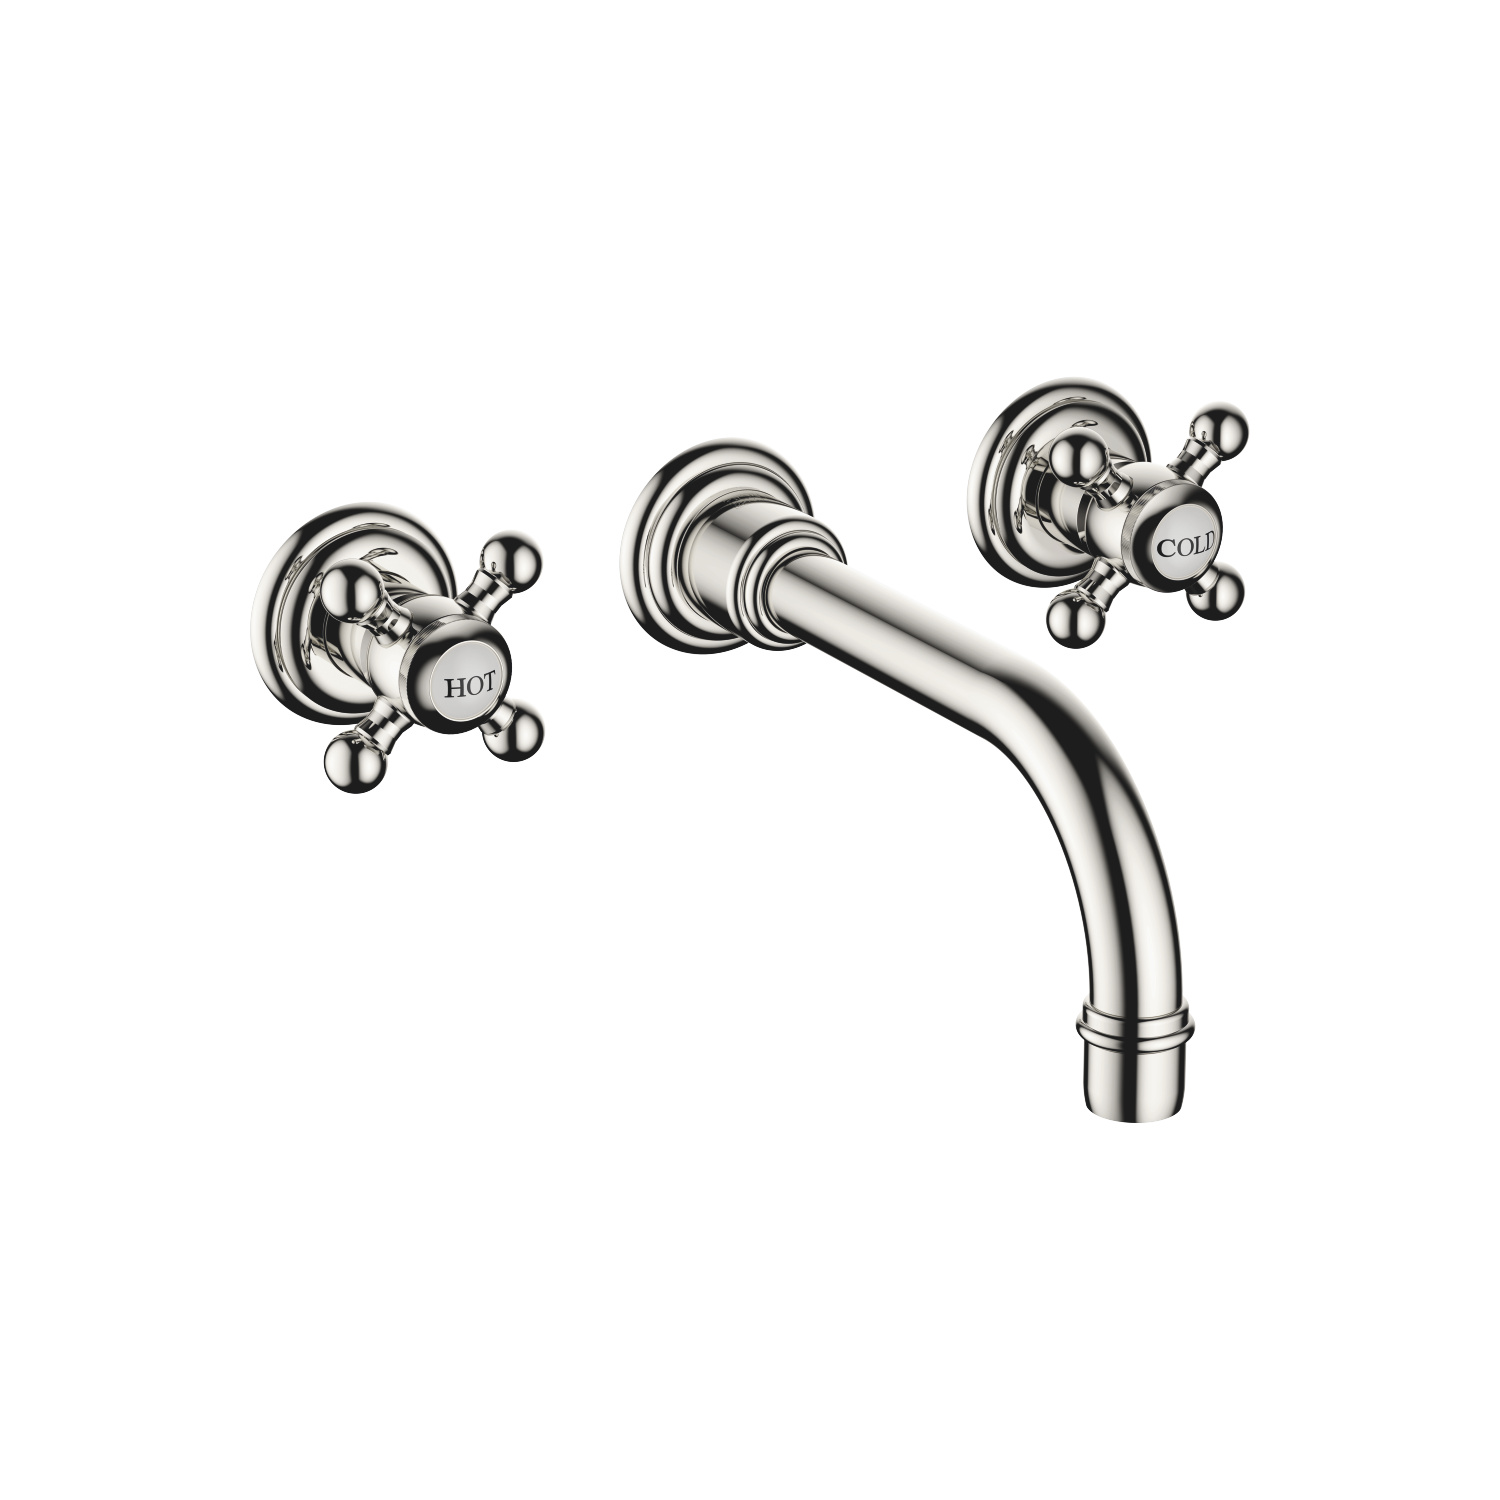 Wall-mounted basin mixer without pop-up waste - platinum